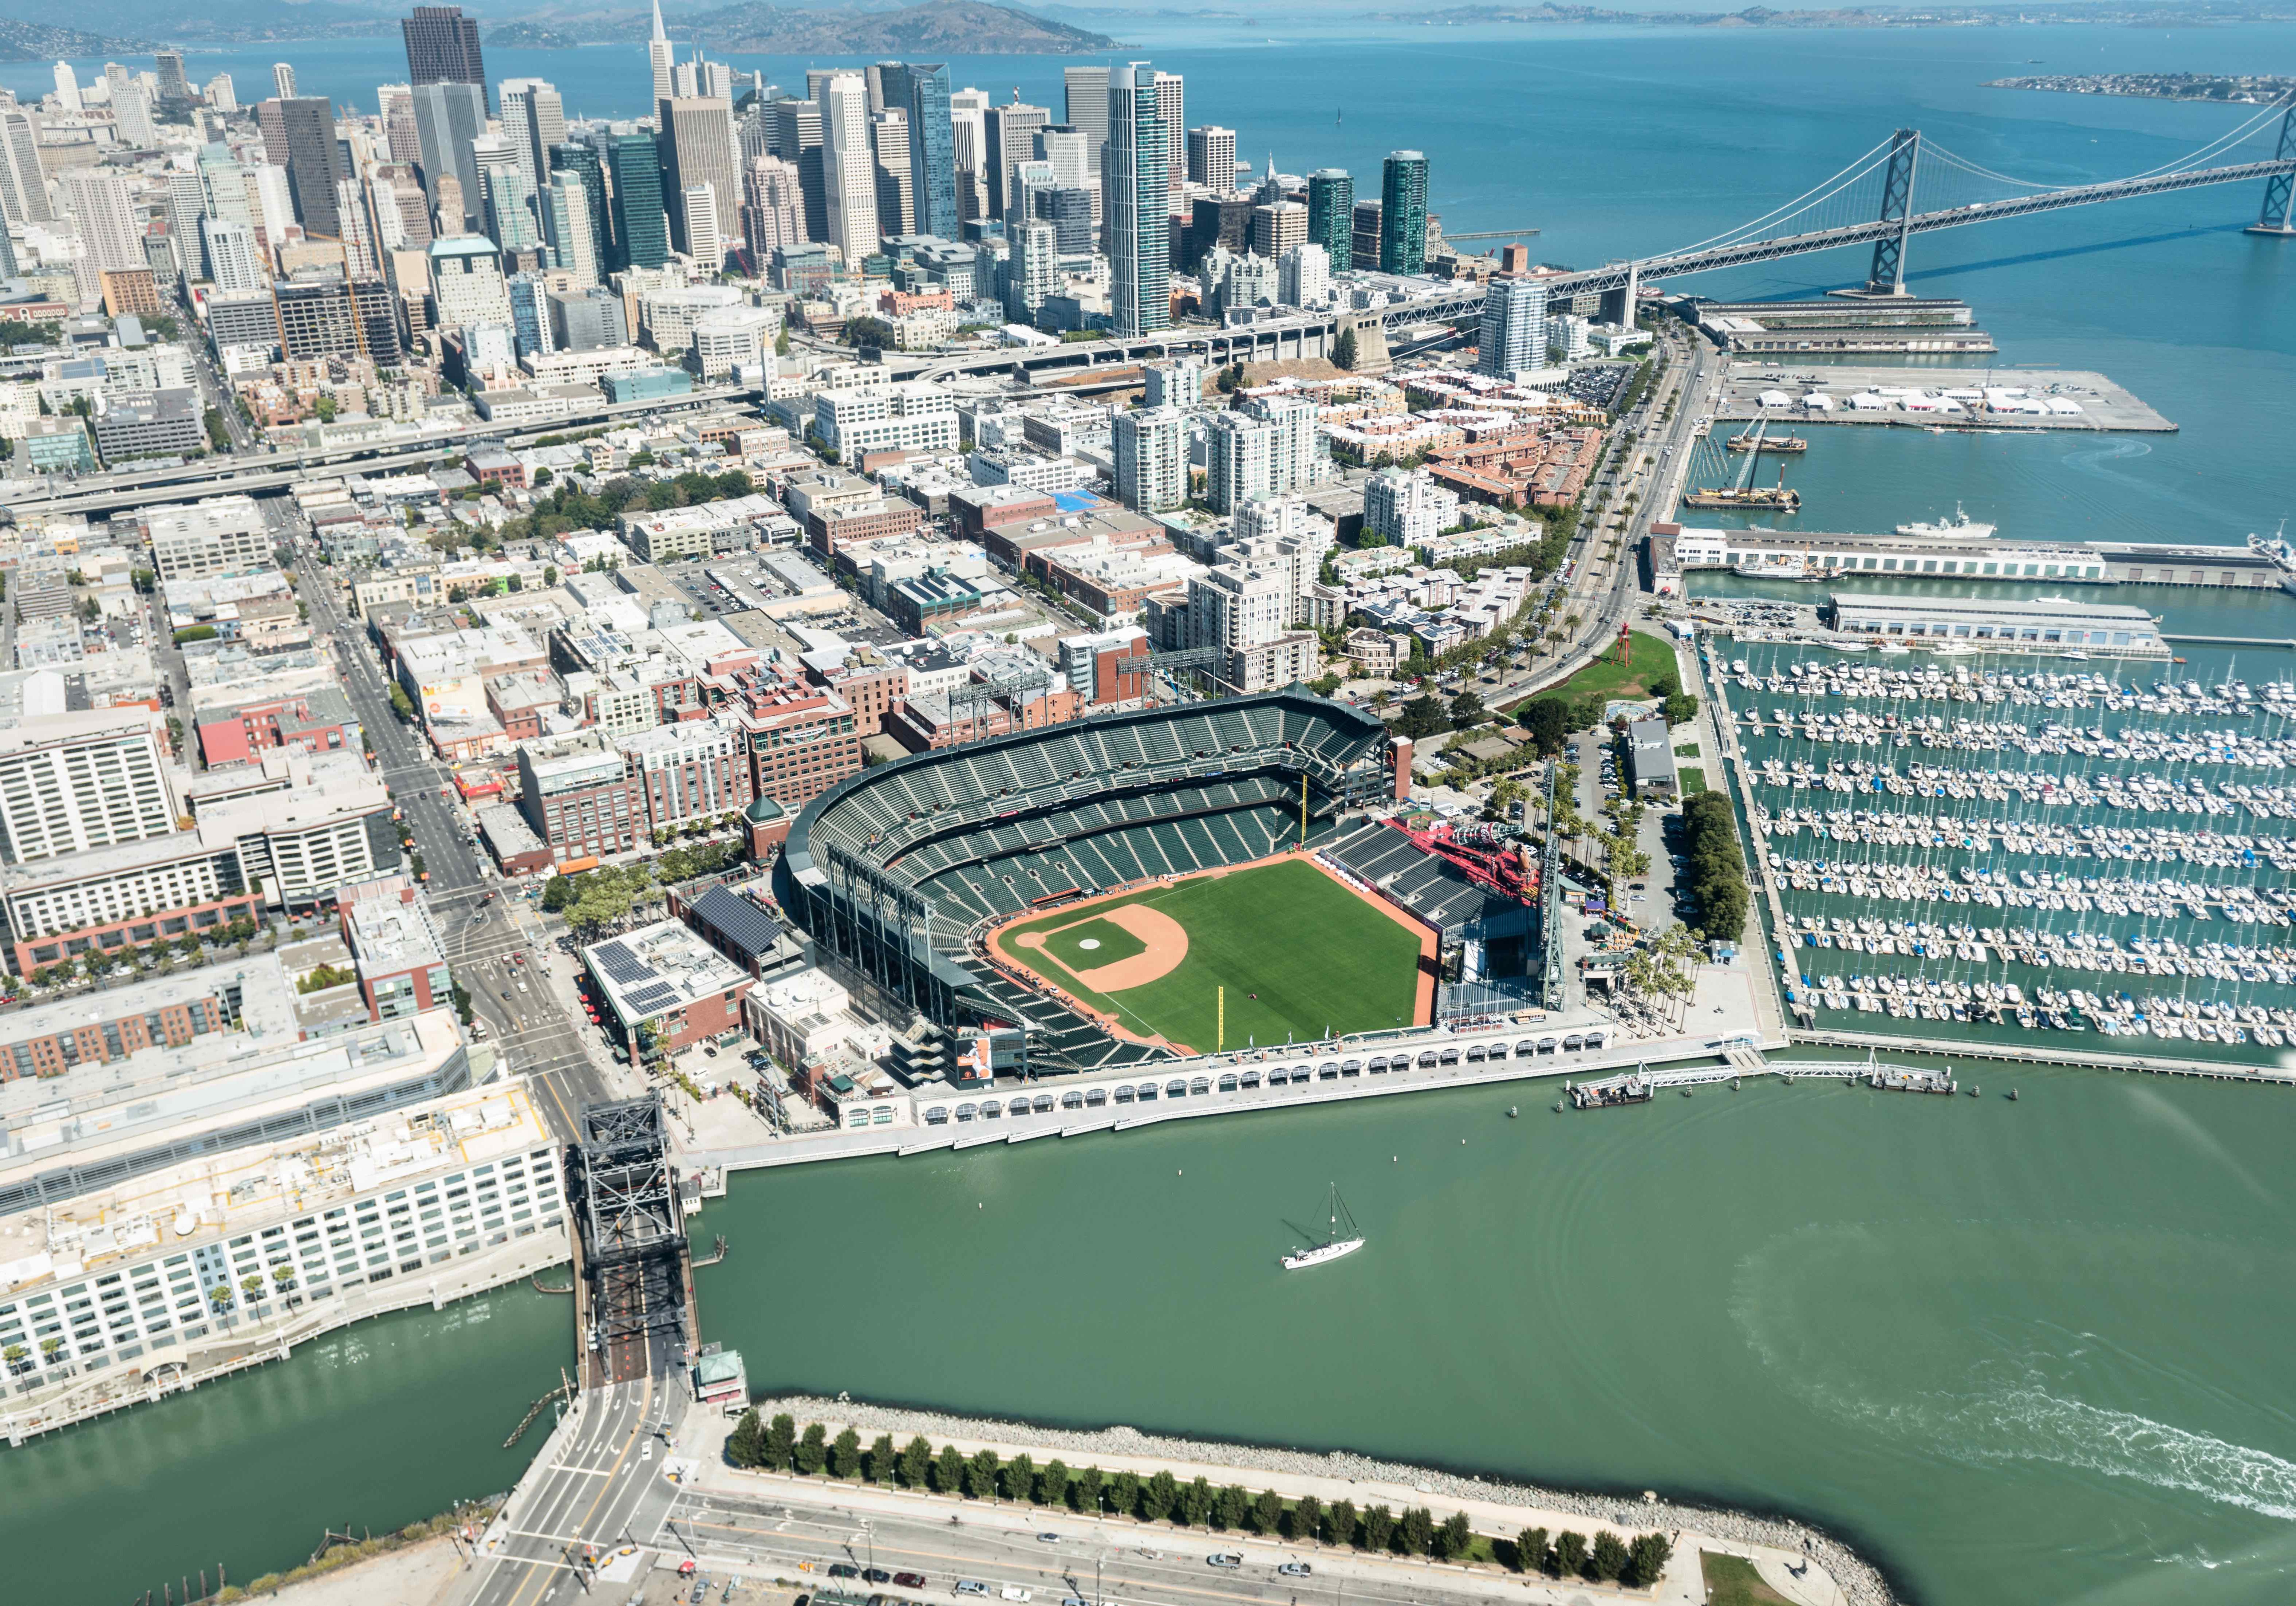 San Francisco, California, USA - August 29, 2012: Aerial view of the Baseball AT+T Park stadium in the north district area of San Francisco. This is the stadium of the San Francisco Giants baseball team. Image taken from the helicopter during a sunny day. In the background is visible the San Francisco downtown area with skyscraper.